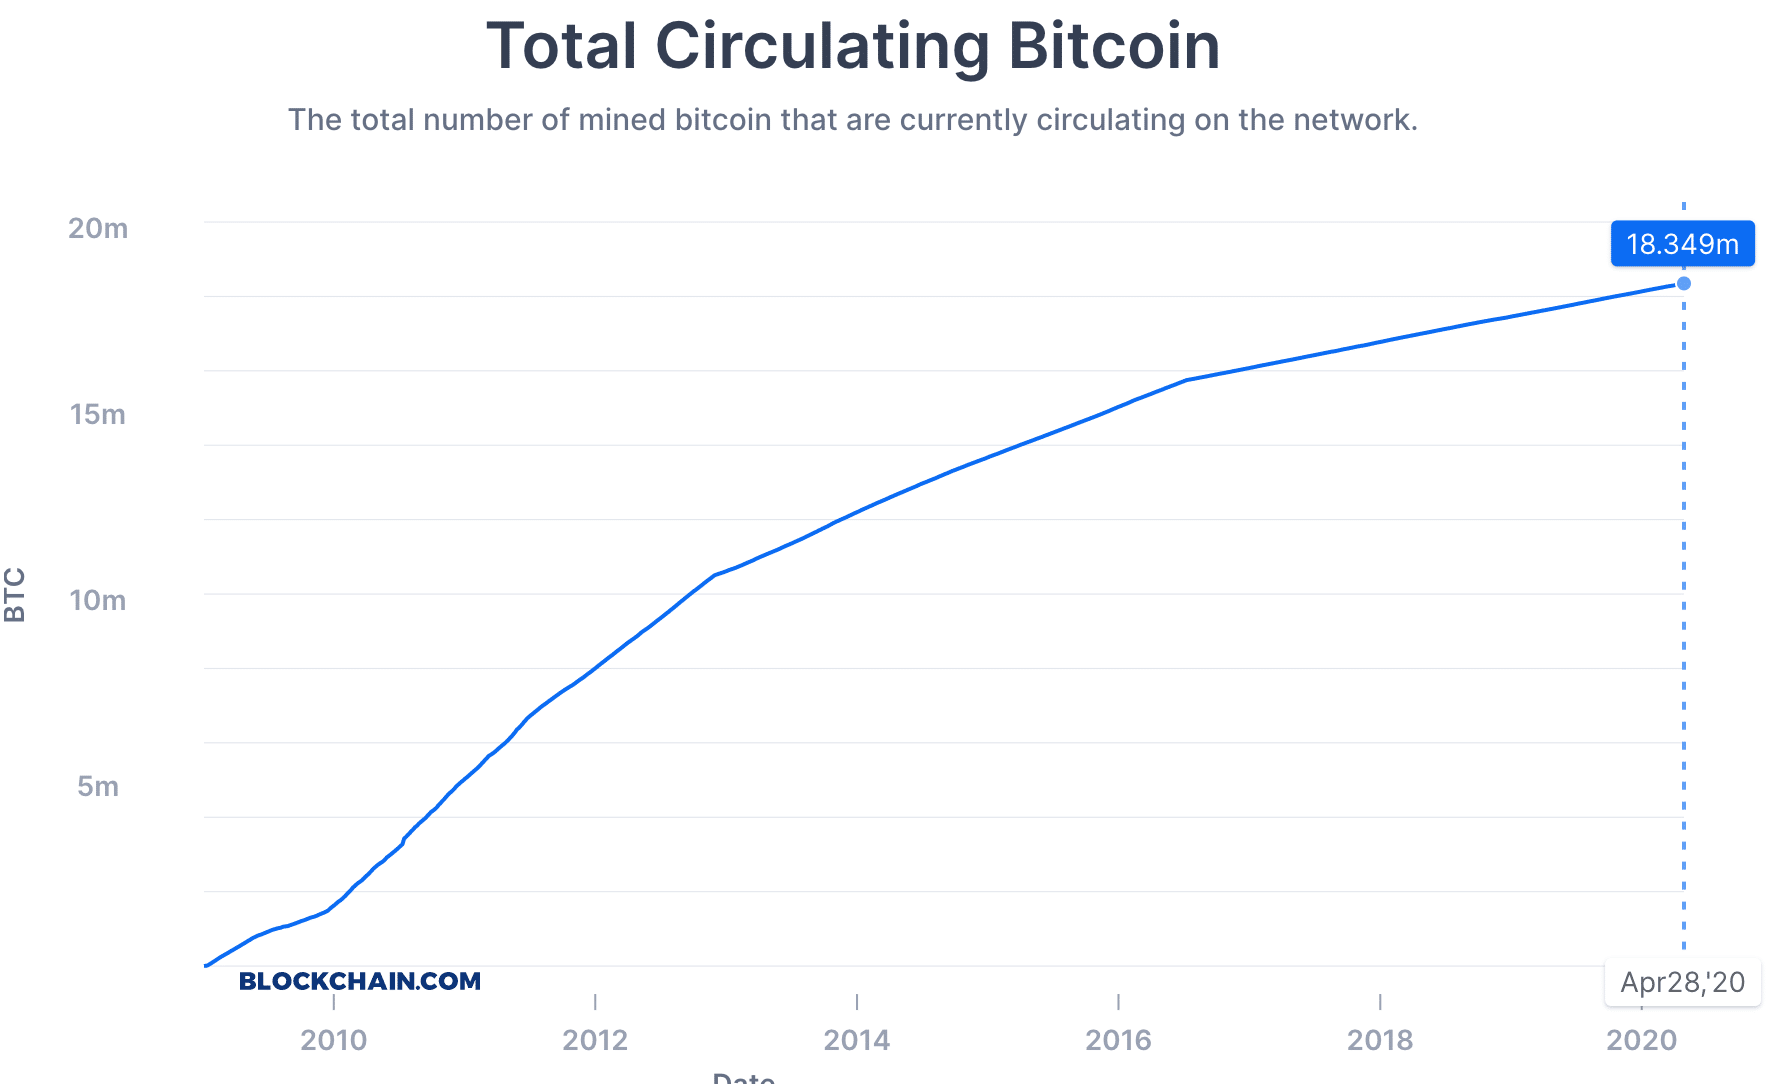 Notice the slight curves due to prior bitcoin halvenings